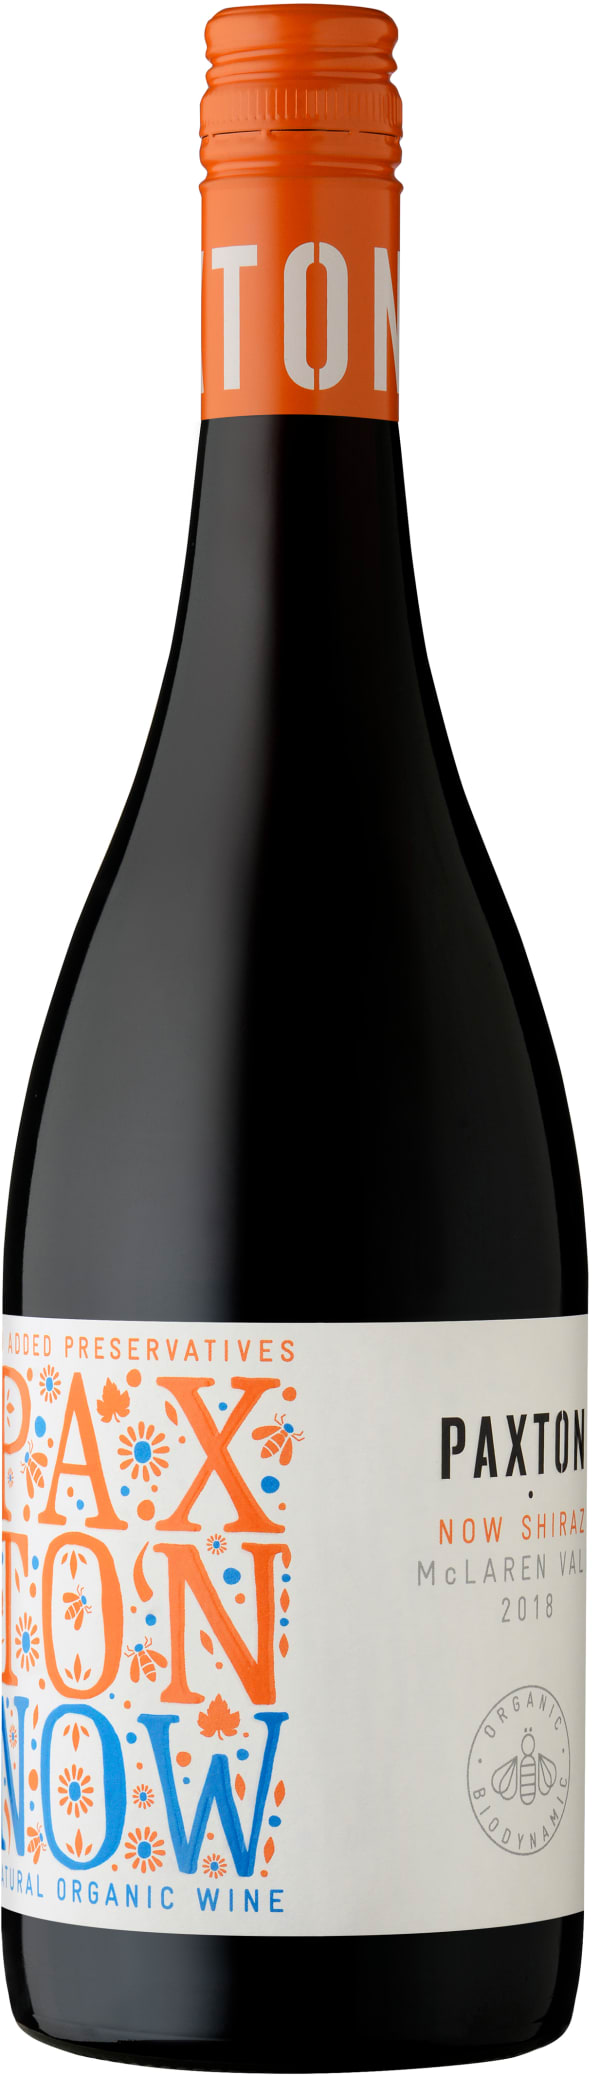 Paxton Now Organic Shiraz 2018